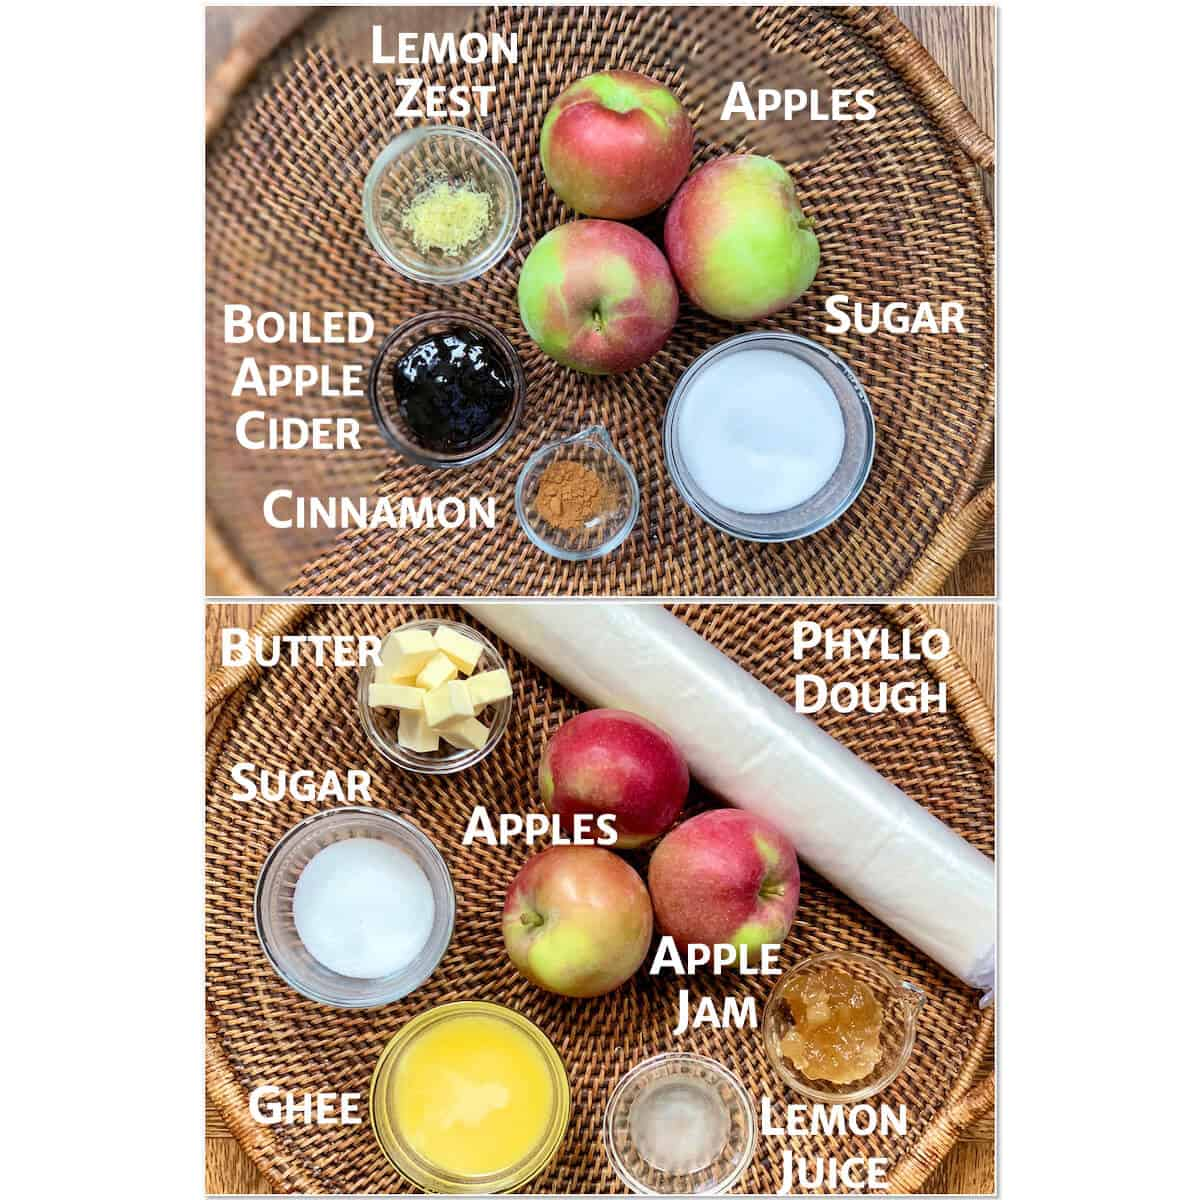 Collage of ingredients portioned into glass bowls on a wooden tray for applesauce and apple galette.